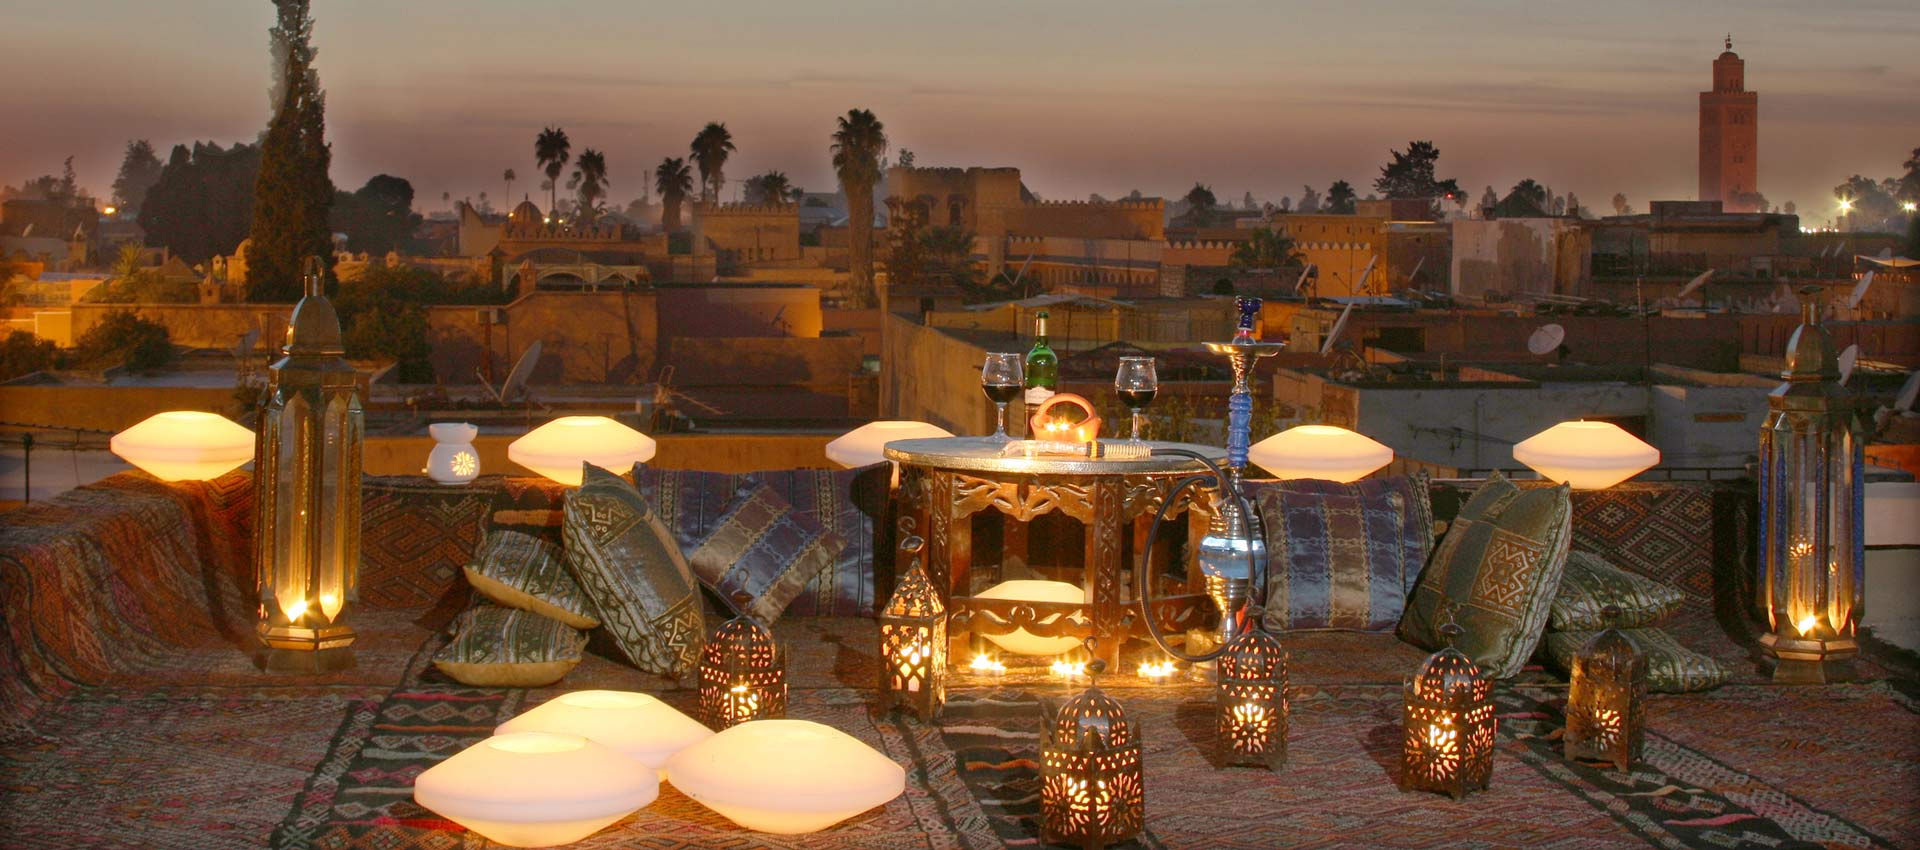 Angsana Riads Collection, Marrakech